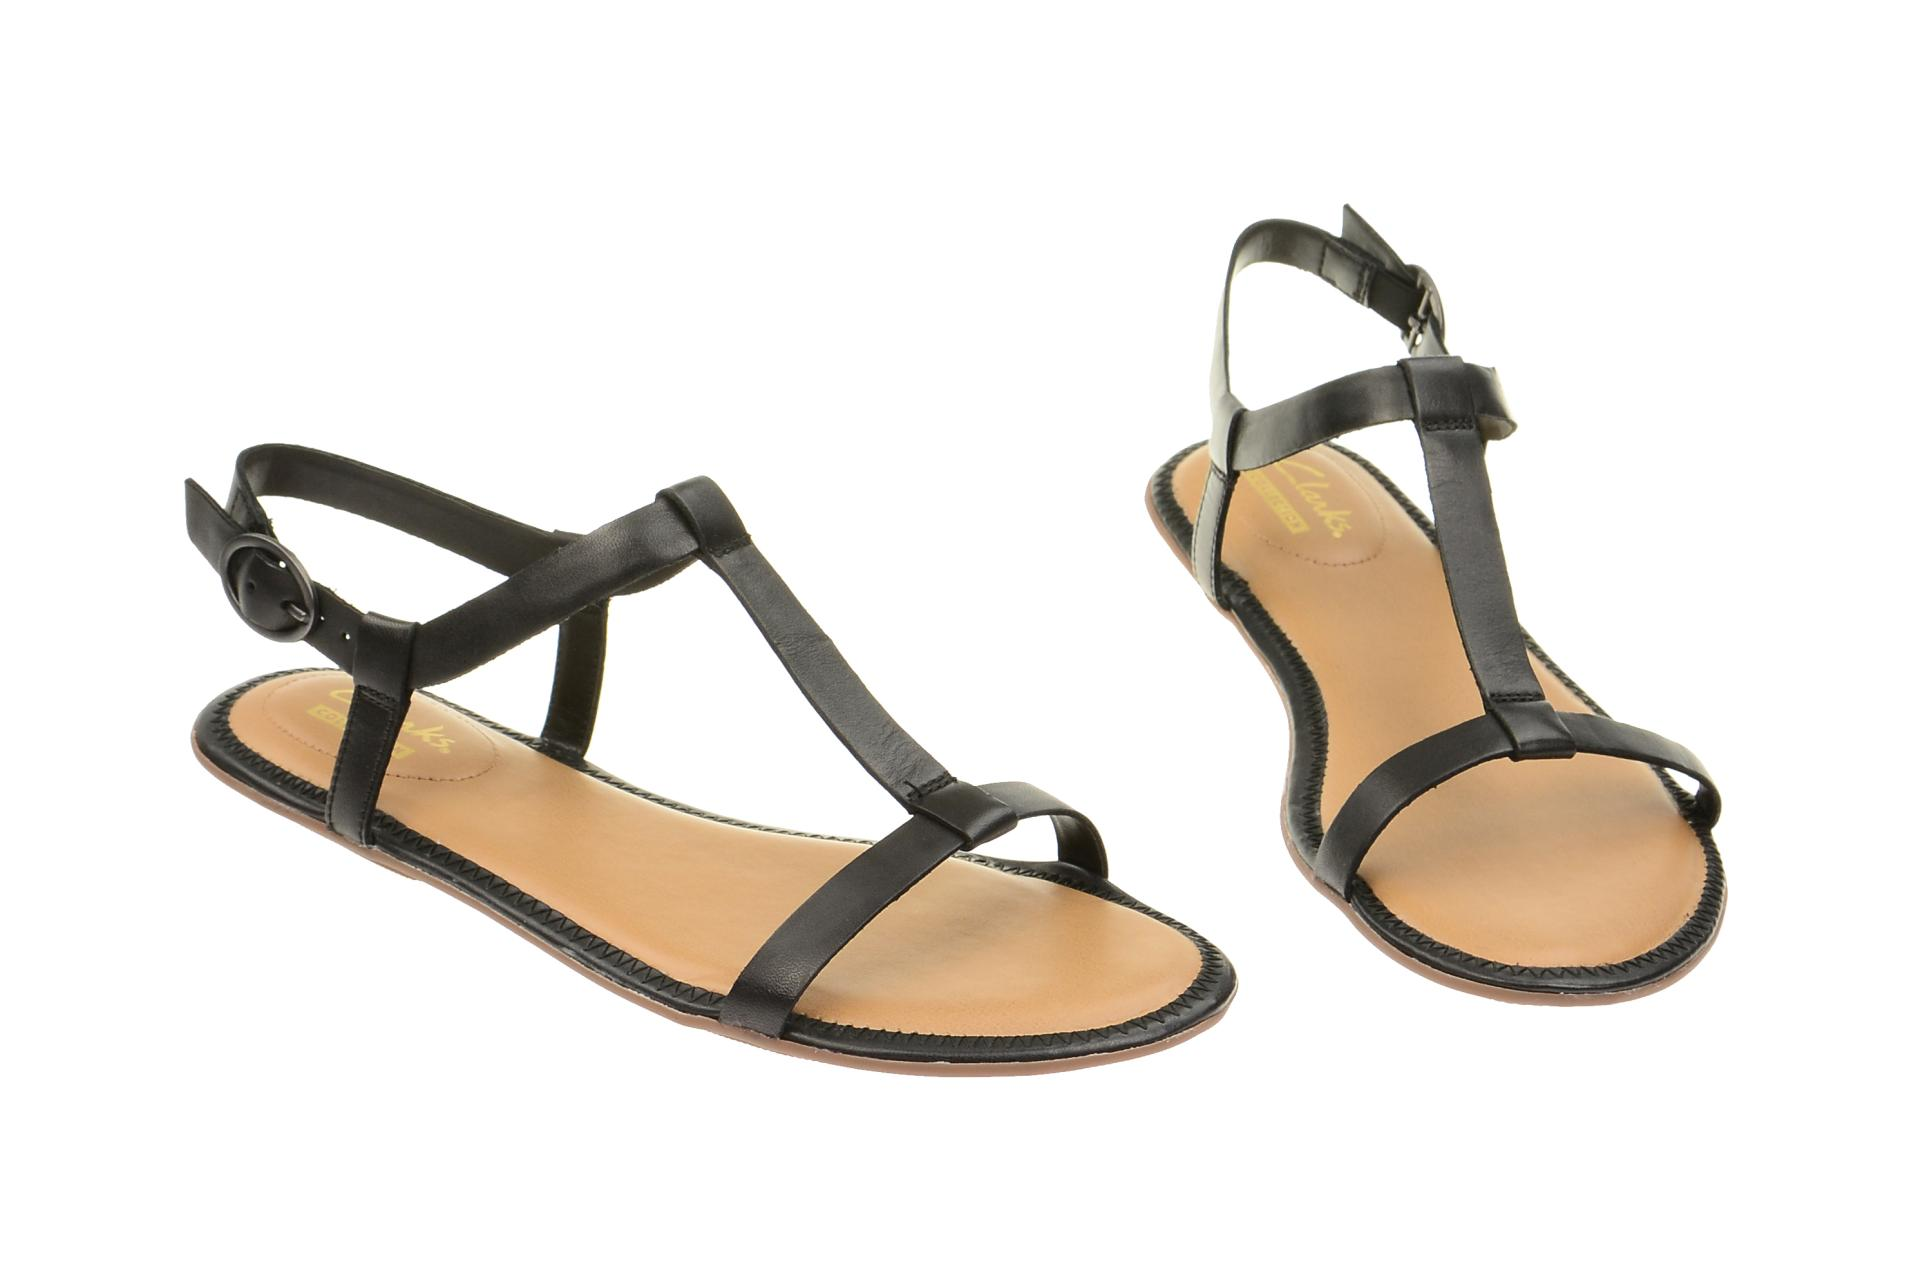 cc8a21b7b8be6 clarks risi hop for sale   OFF49% Discounts